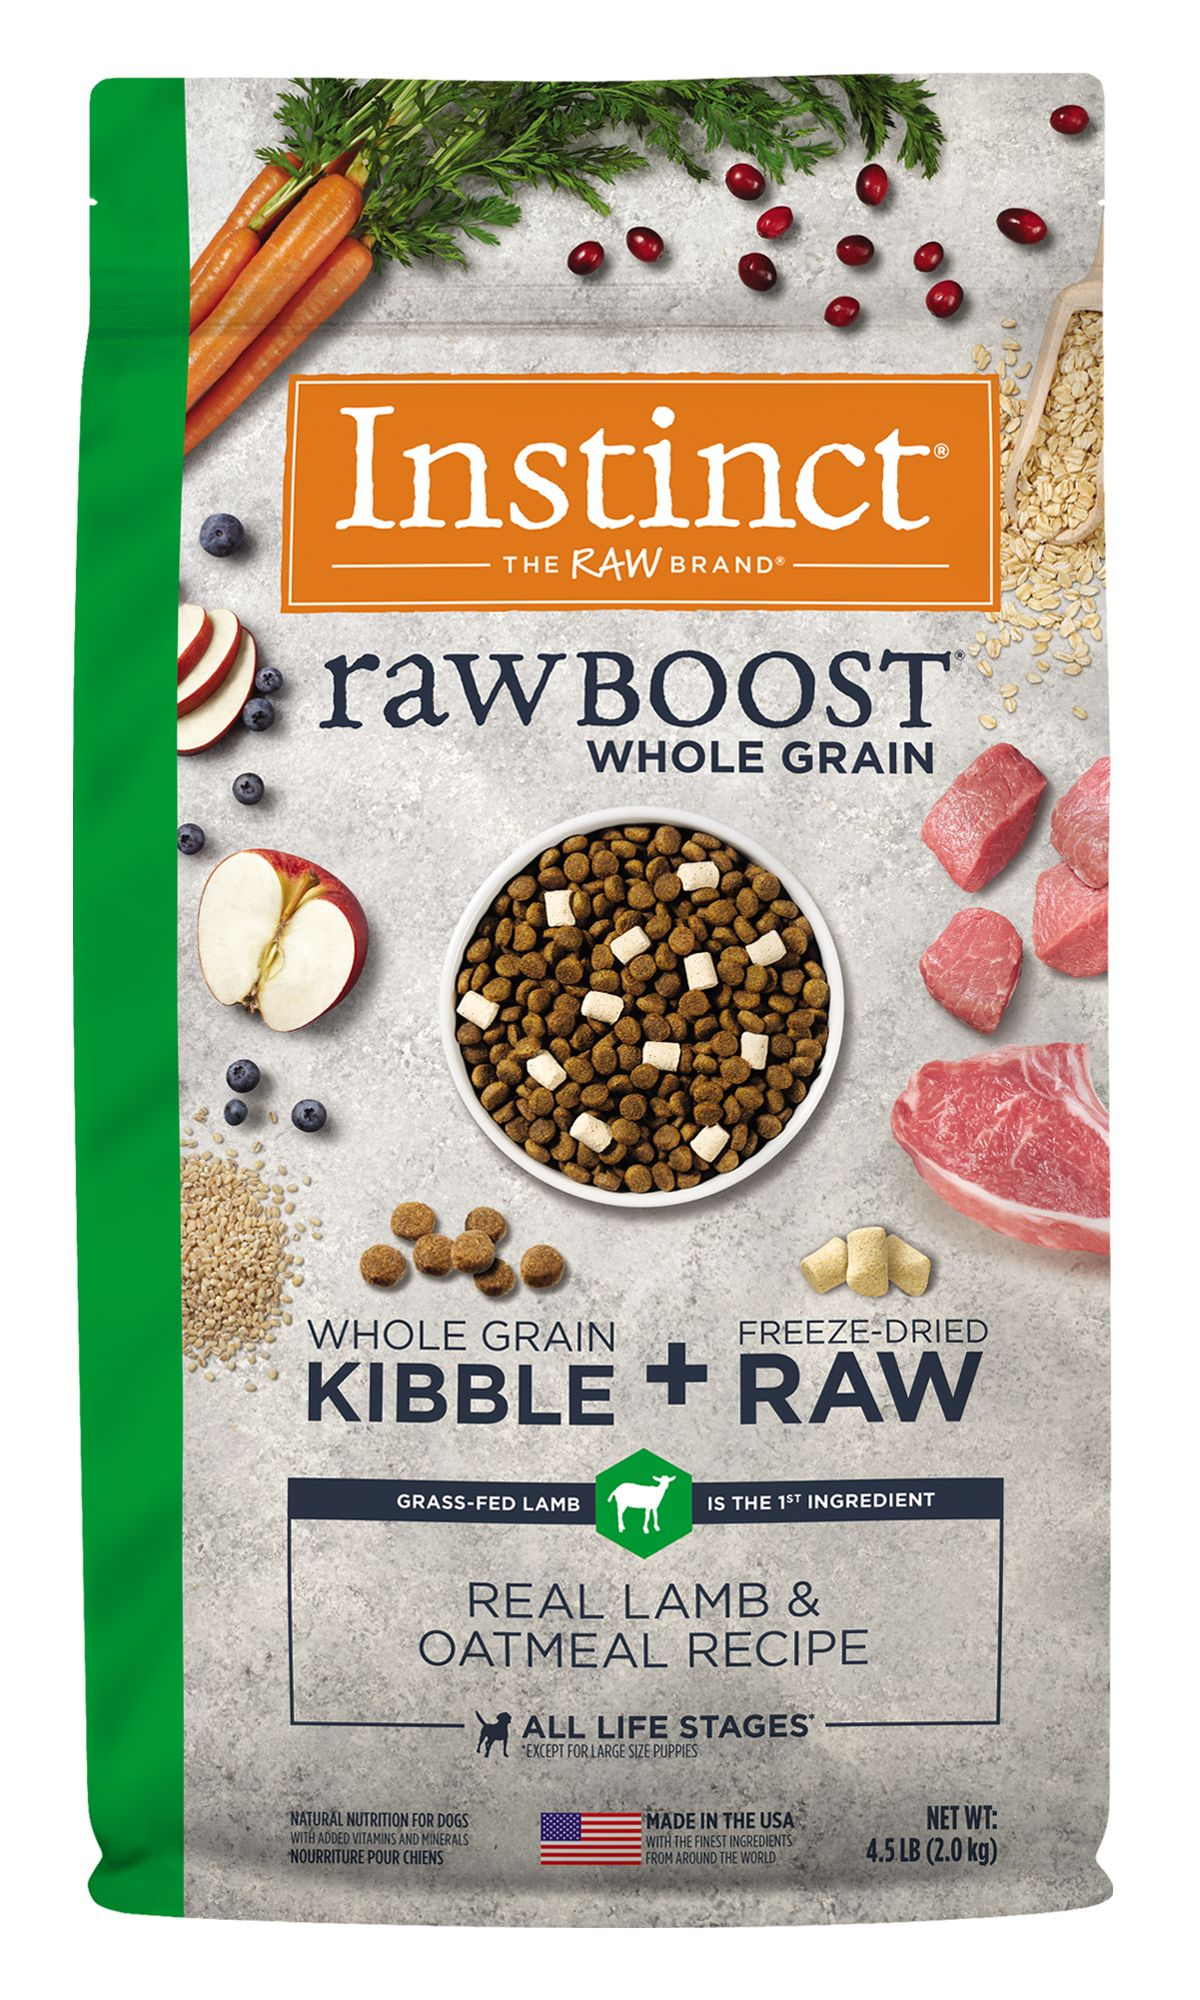 Raw Boost Whole Grain Recipe with Real Lamb and Oatmeal